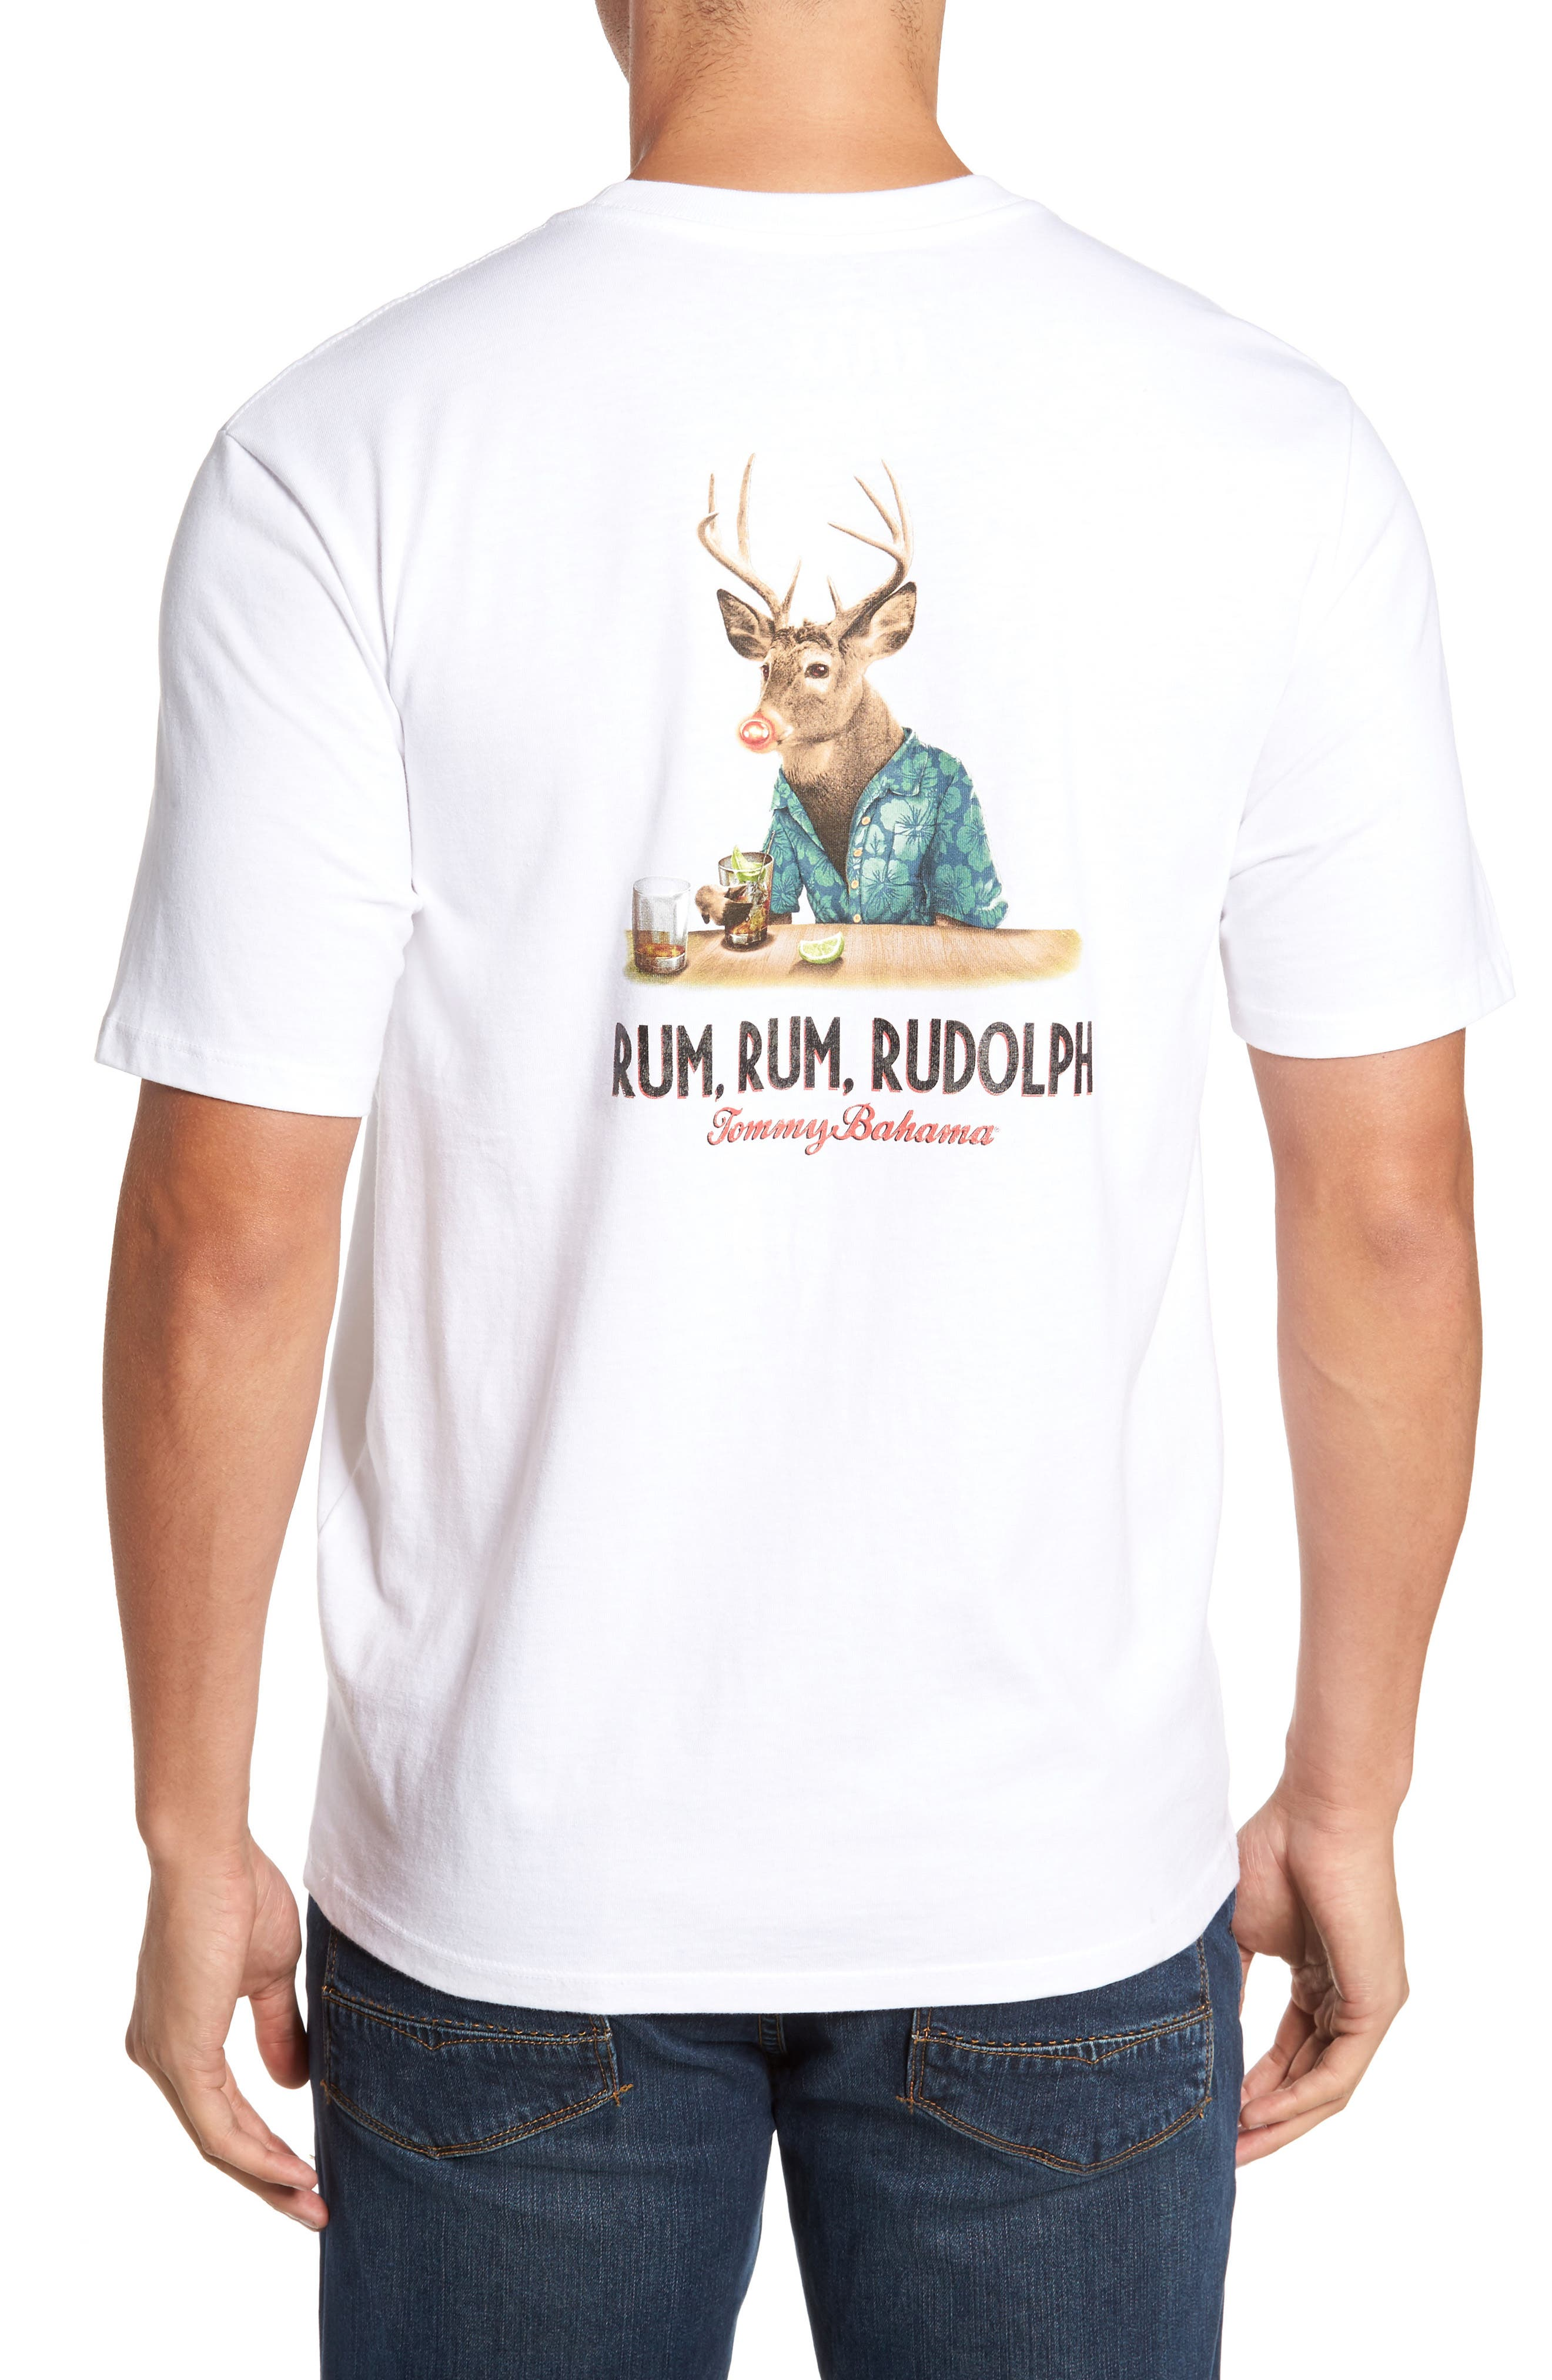 Rum Rum Rudolph T-Shirt,                             Main thumbnail 1, color,                             White